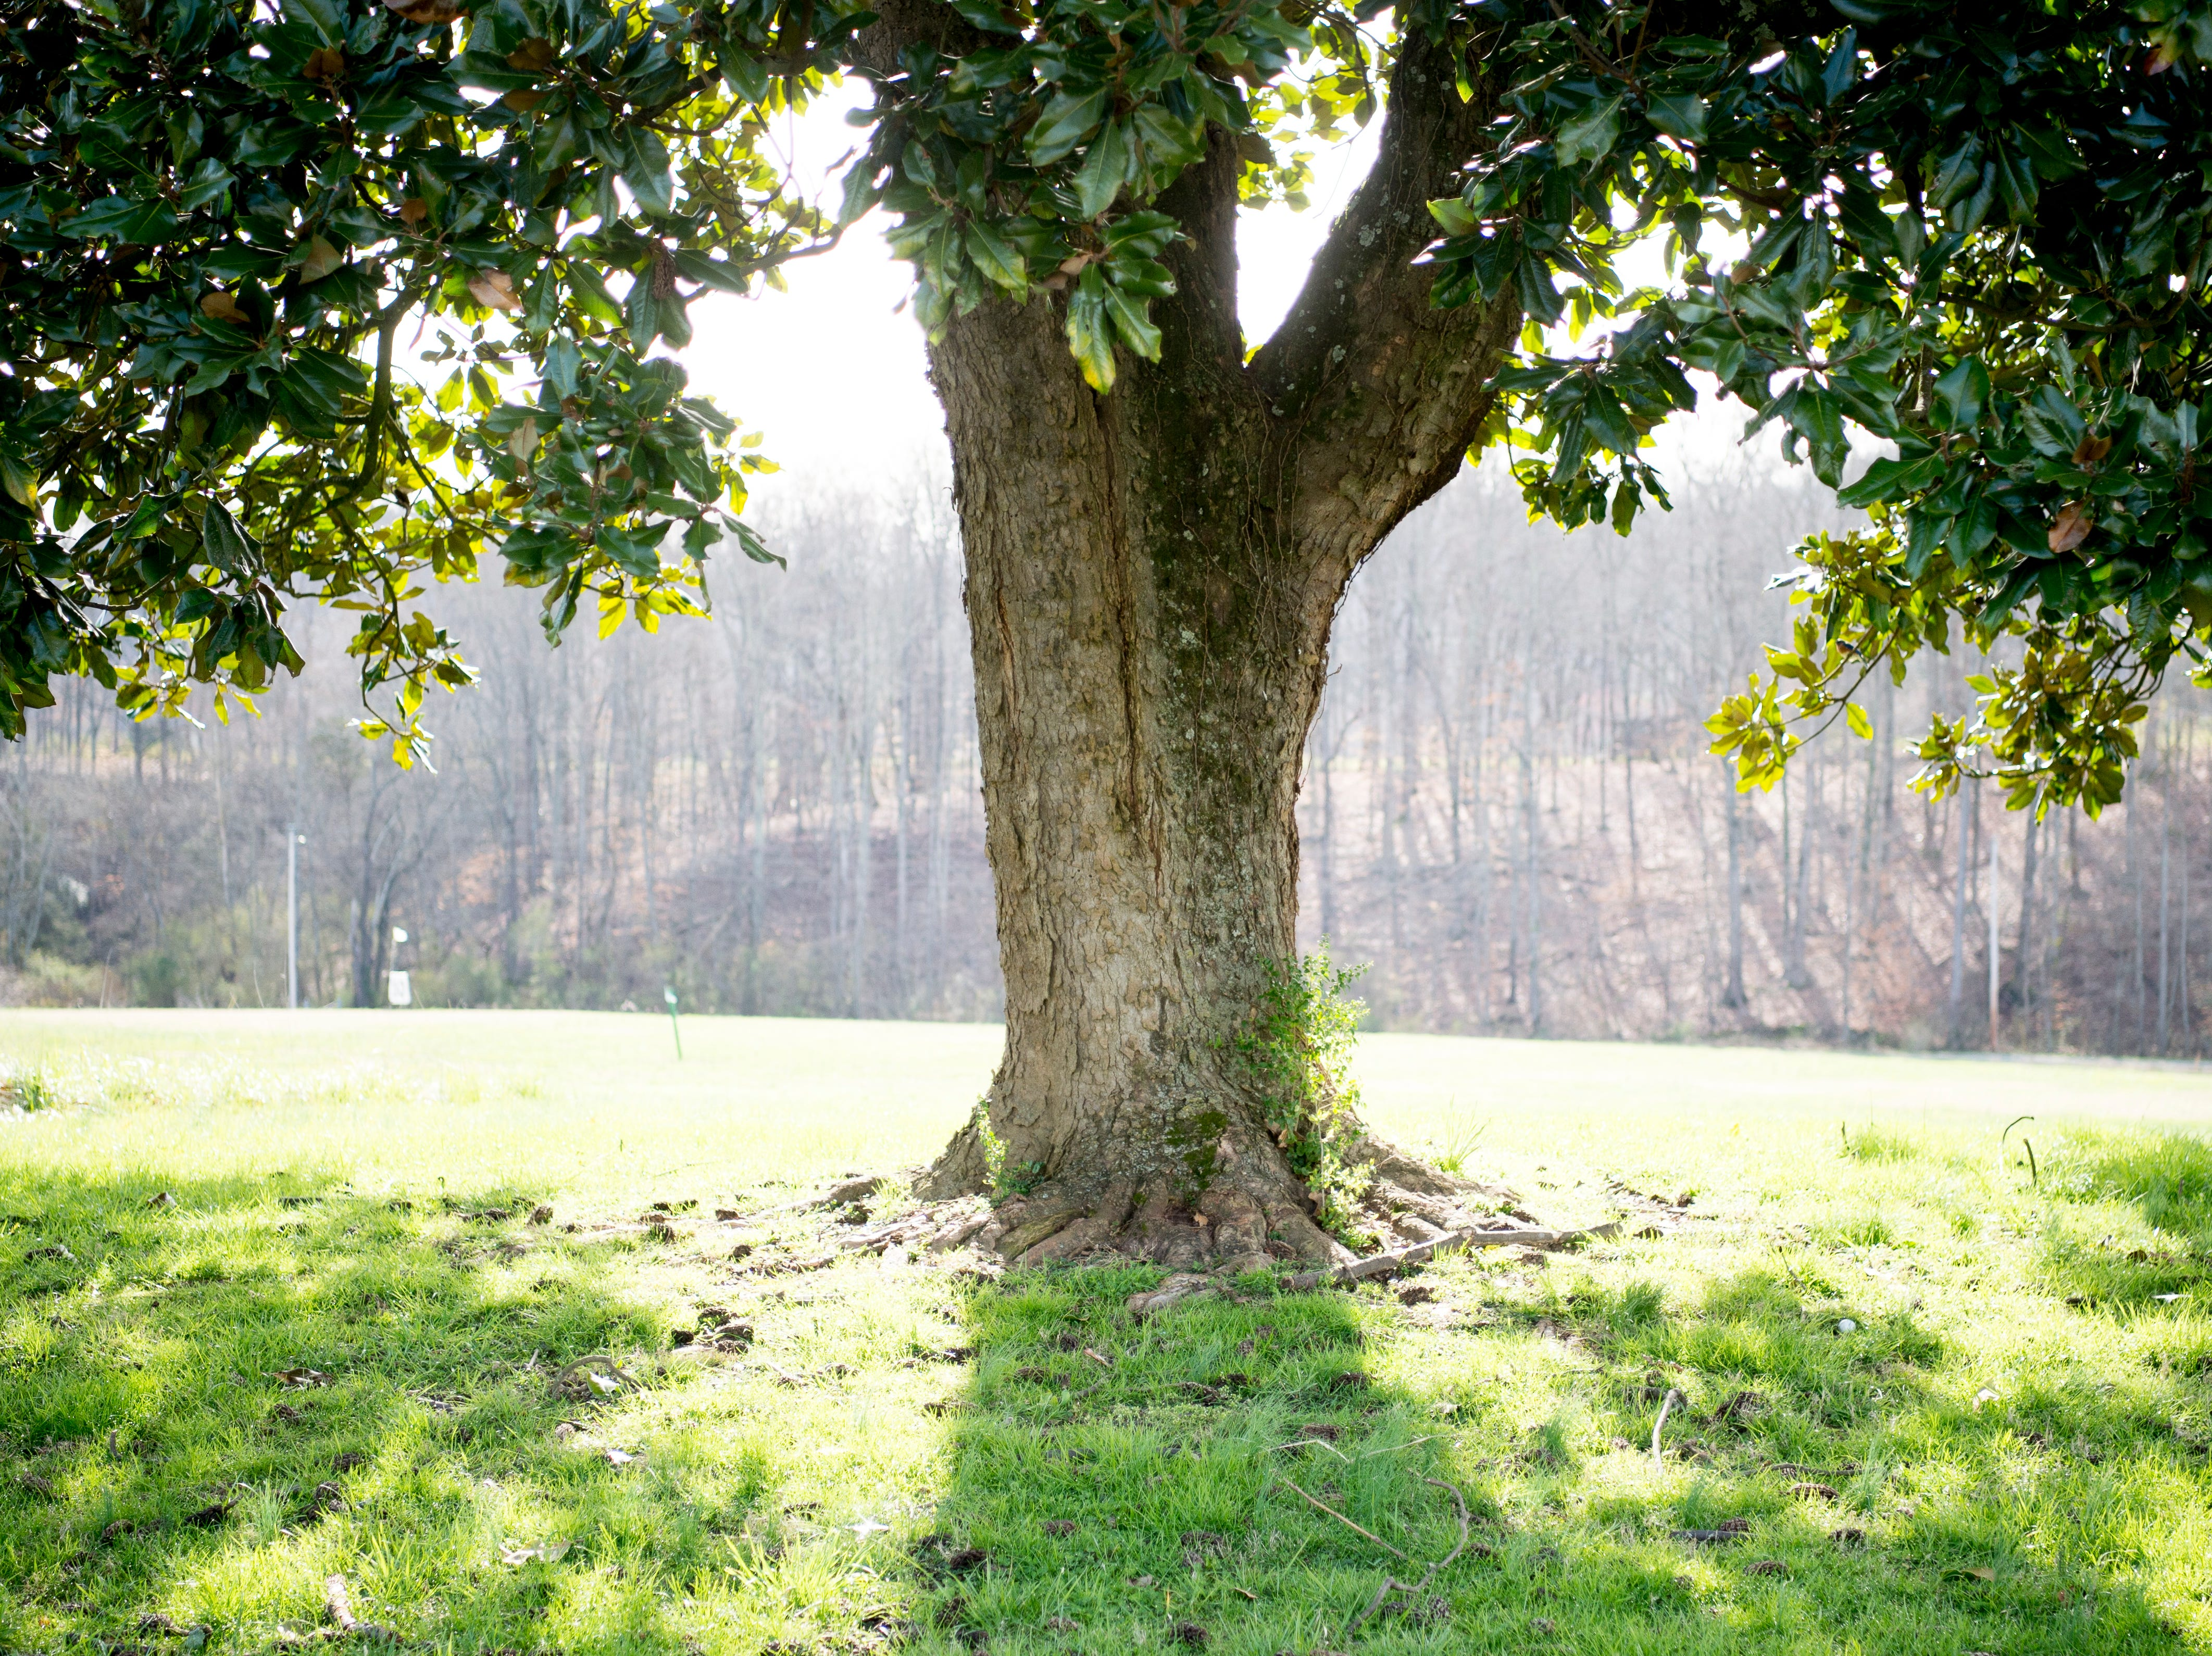 A large tree provides shade at the site of the future Aspire Park in Clinton, Tennessee on Tuesday, March 12, 2019. The Hollingsworth Foundation is looking to redevelop nearly 450 acres of land off Yarnell Road into a recreational park.